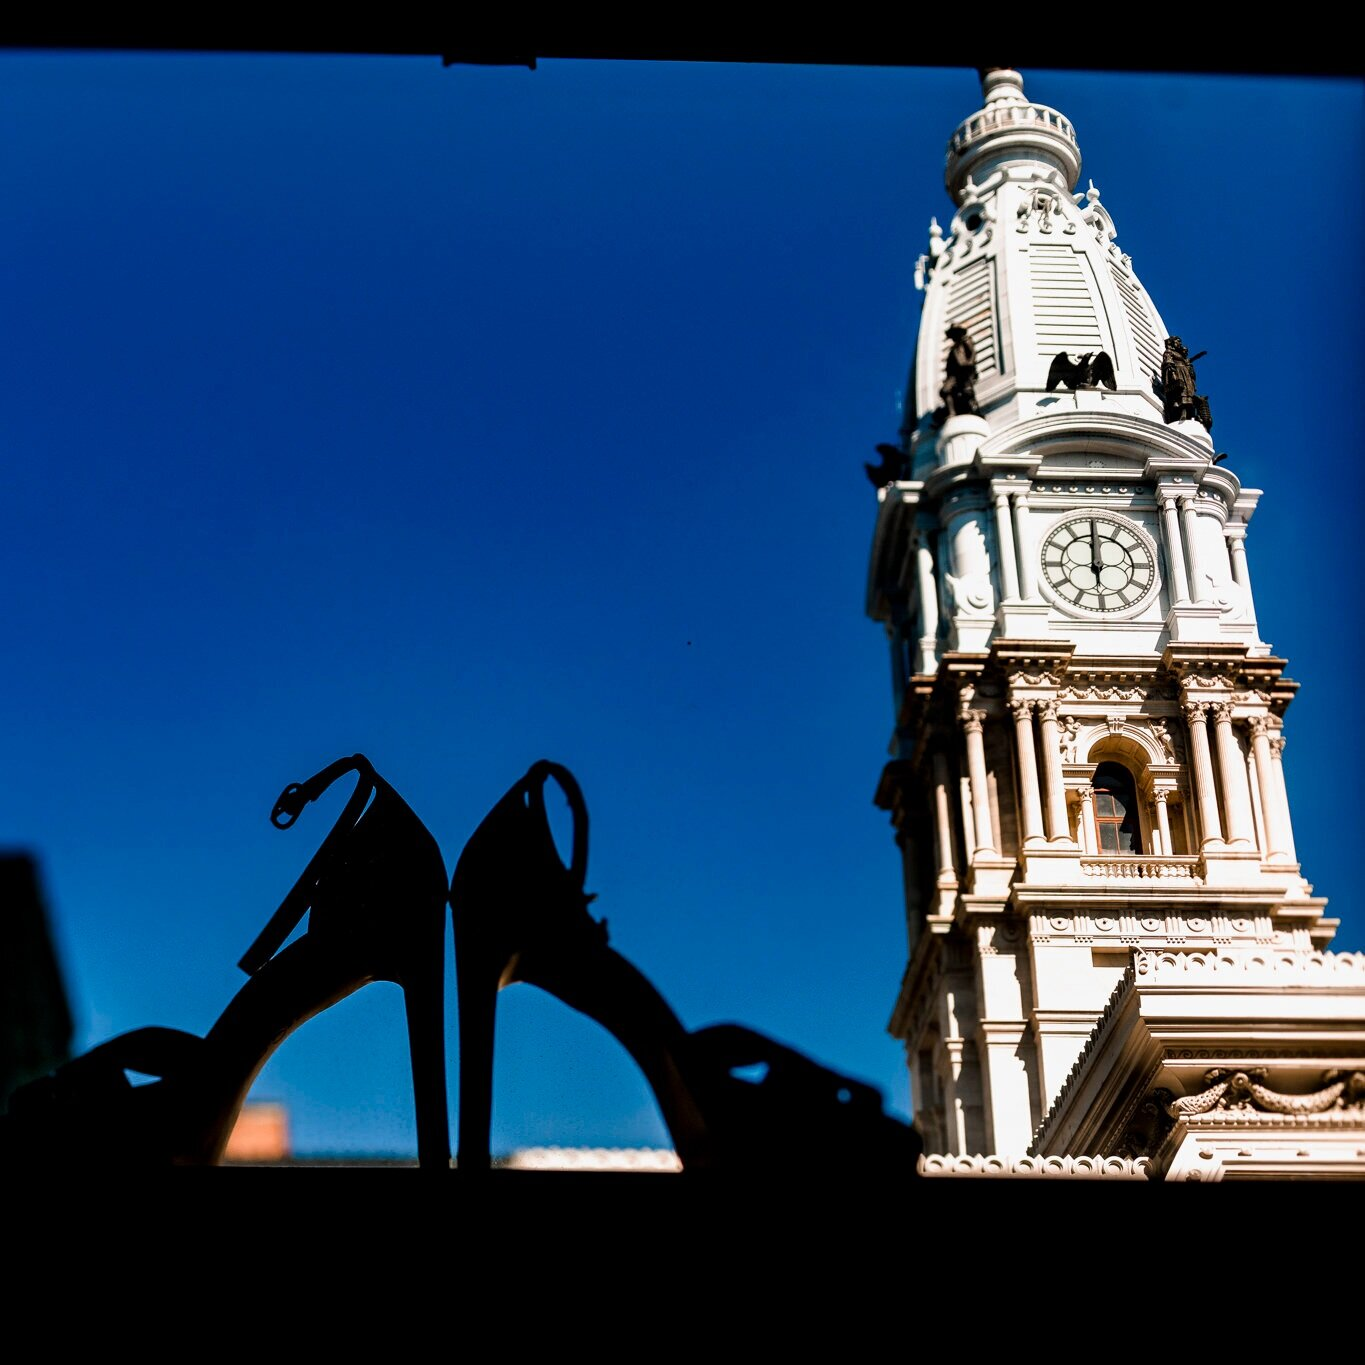 Brozenia-Ritz-Carlton-Philadelphia-Wedding-Photographer-02.JPG